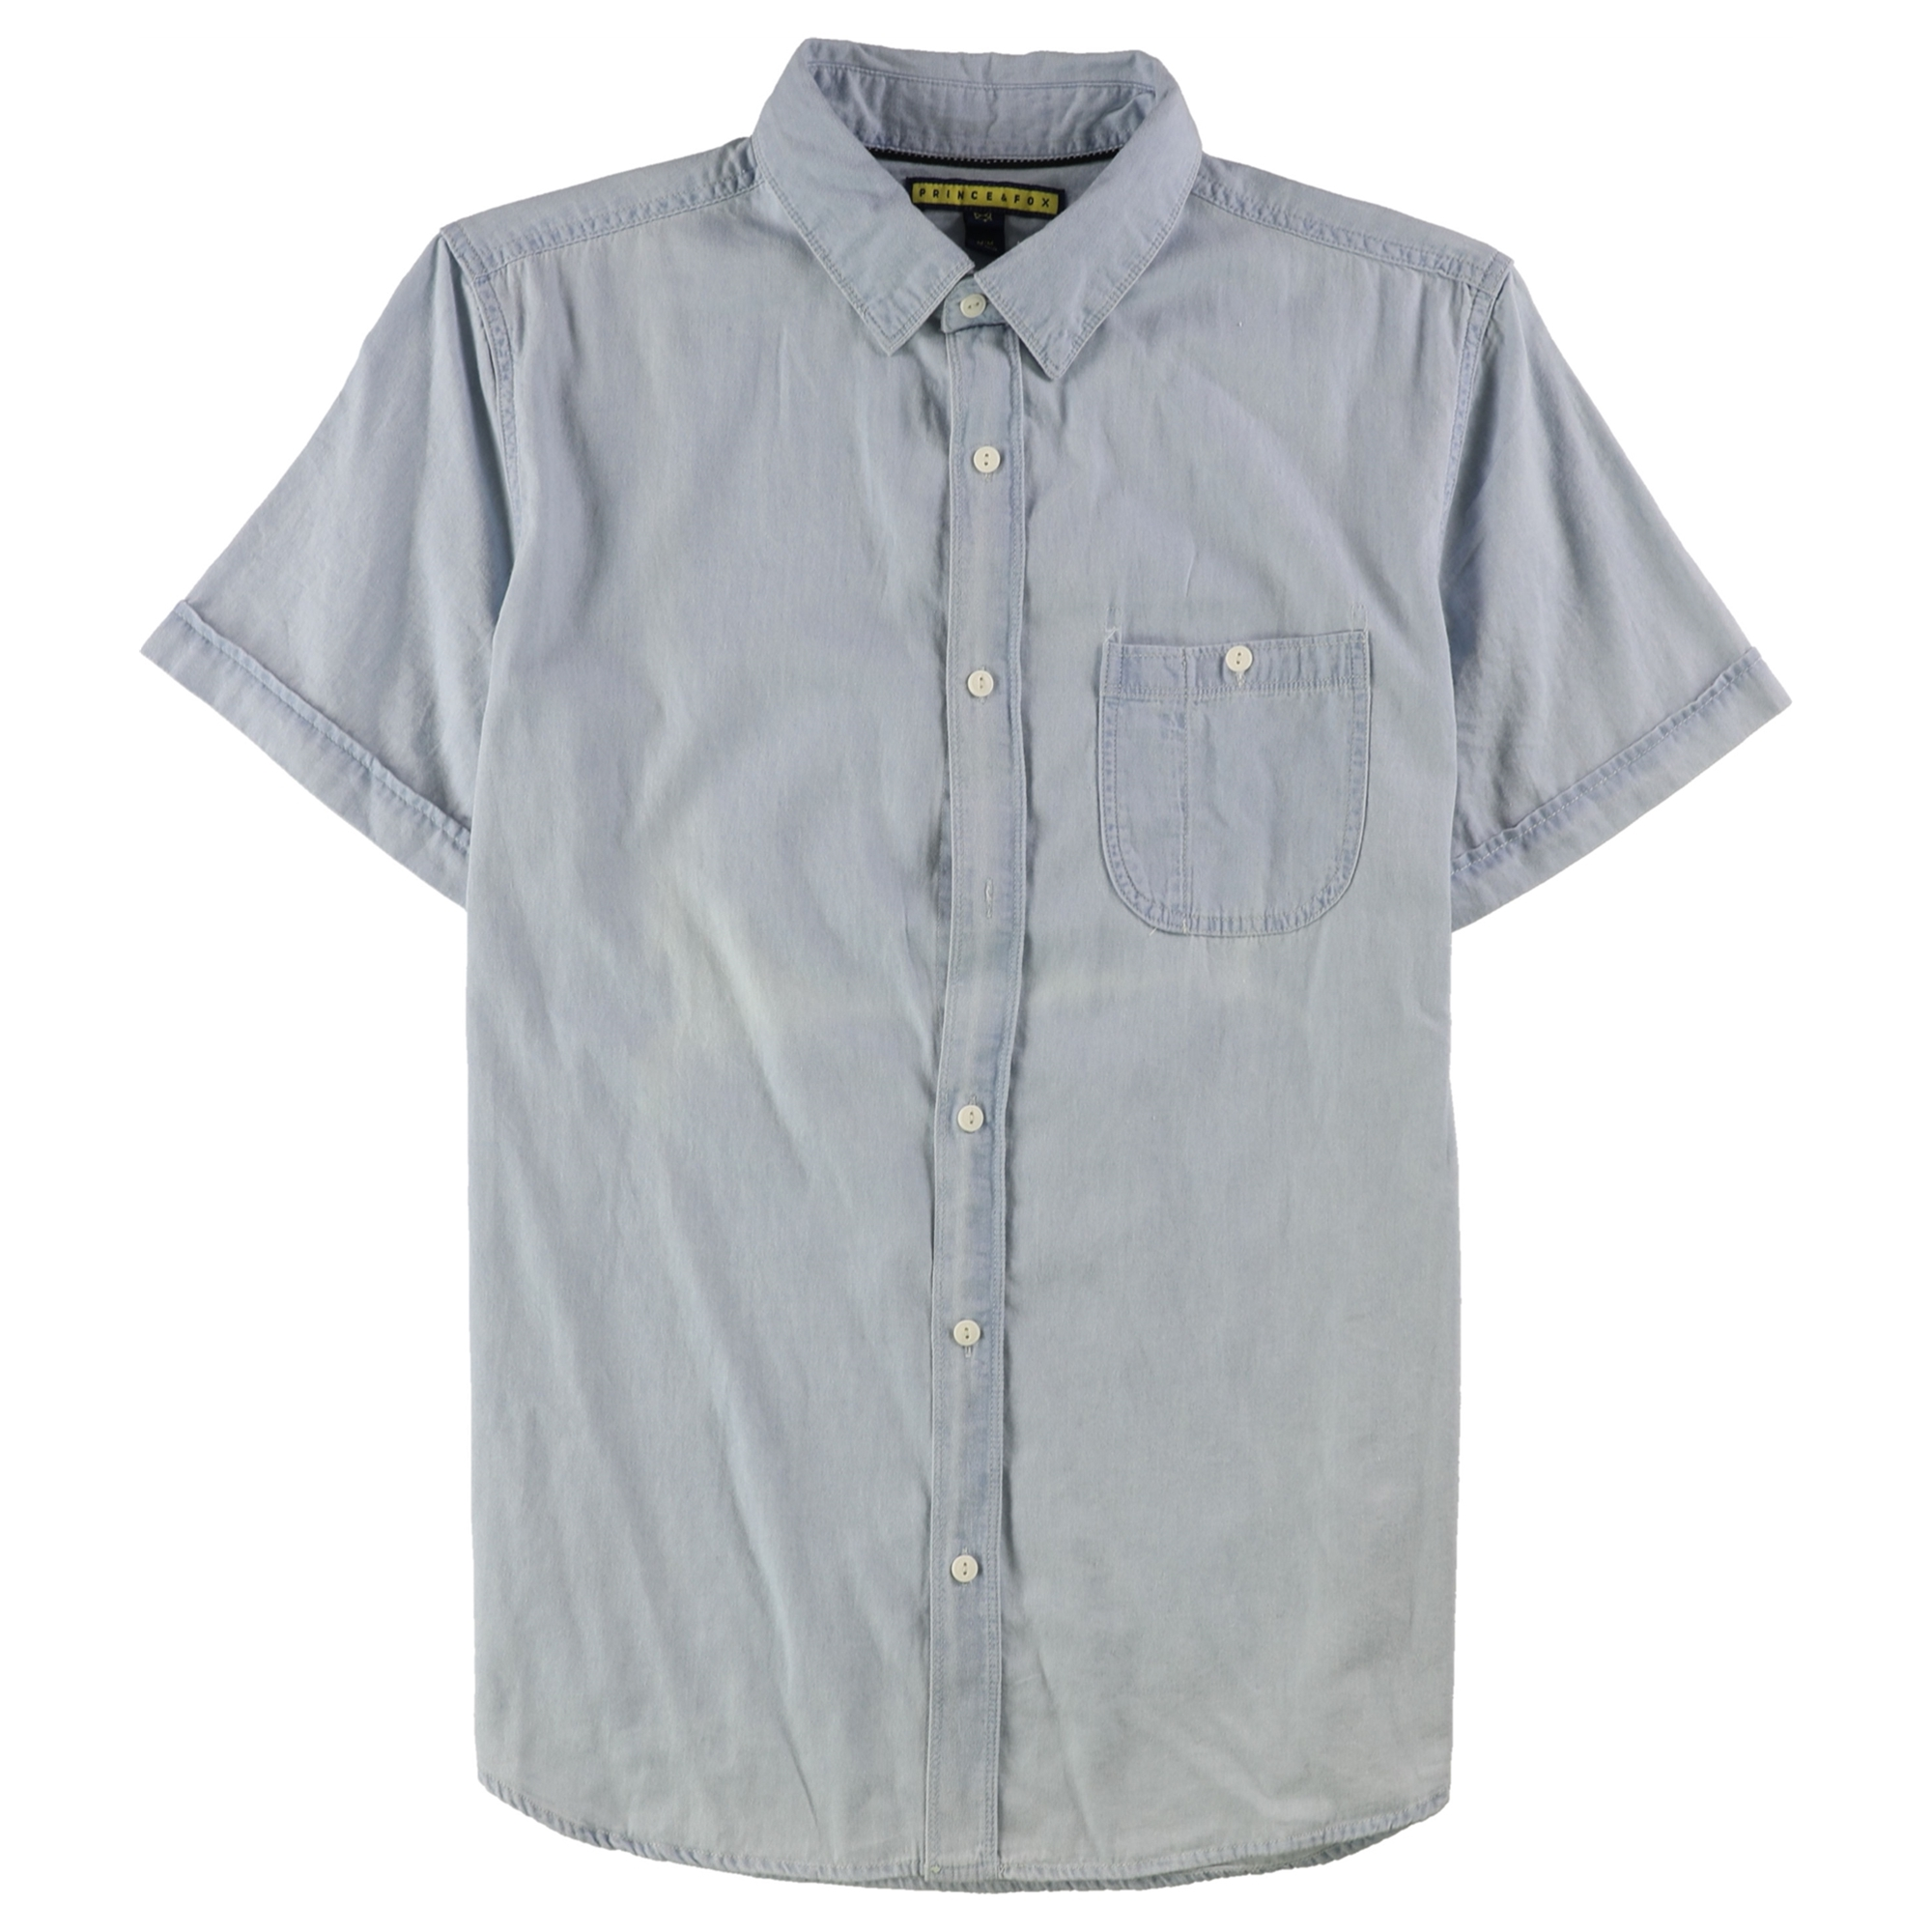 Aeropostale Mens Pocket Button Up Shirt